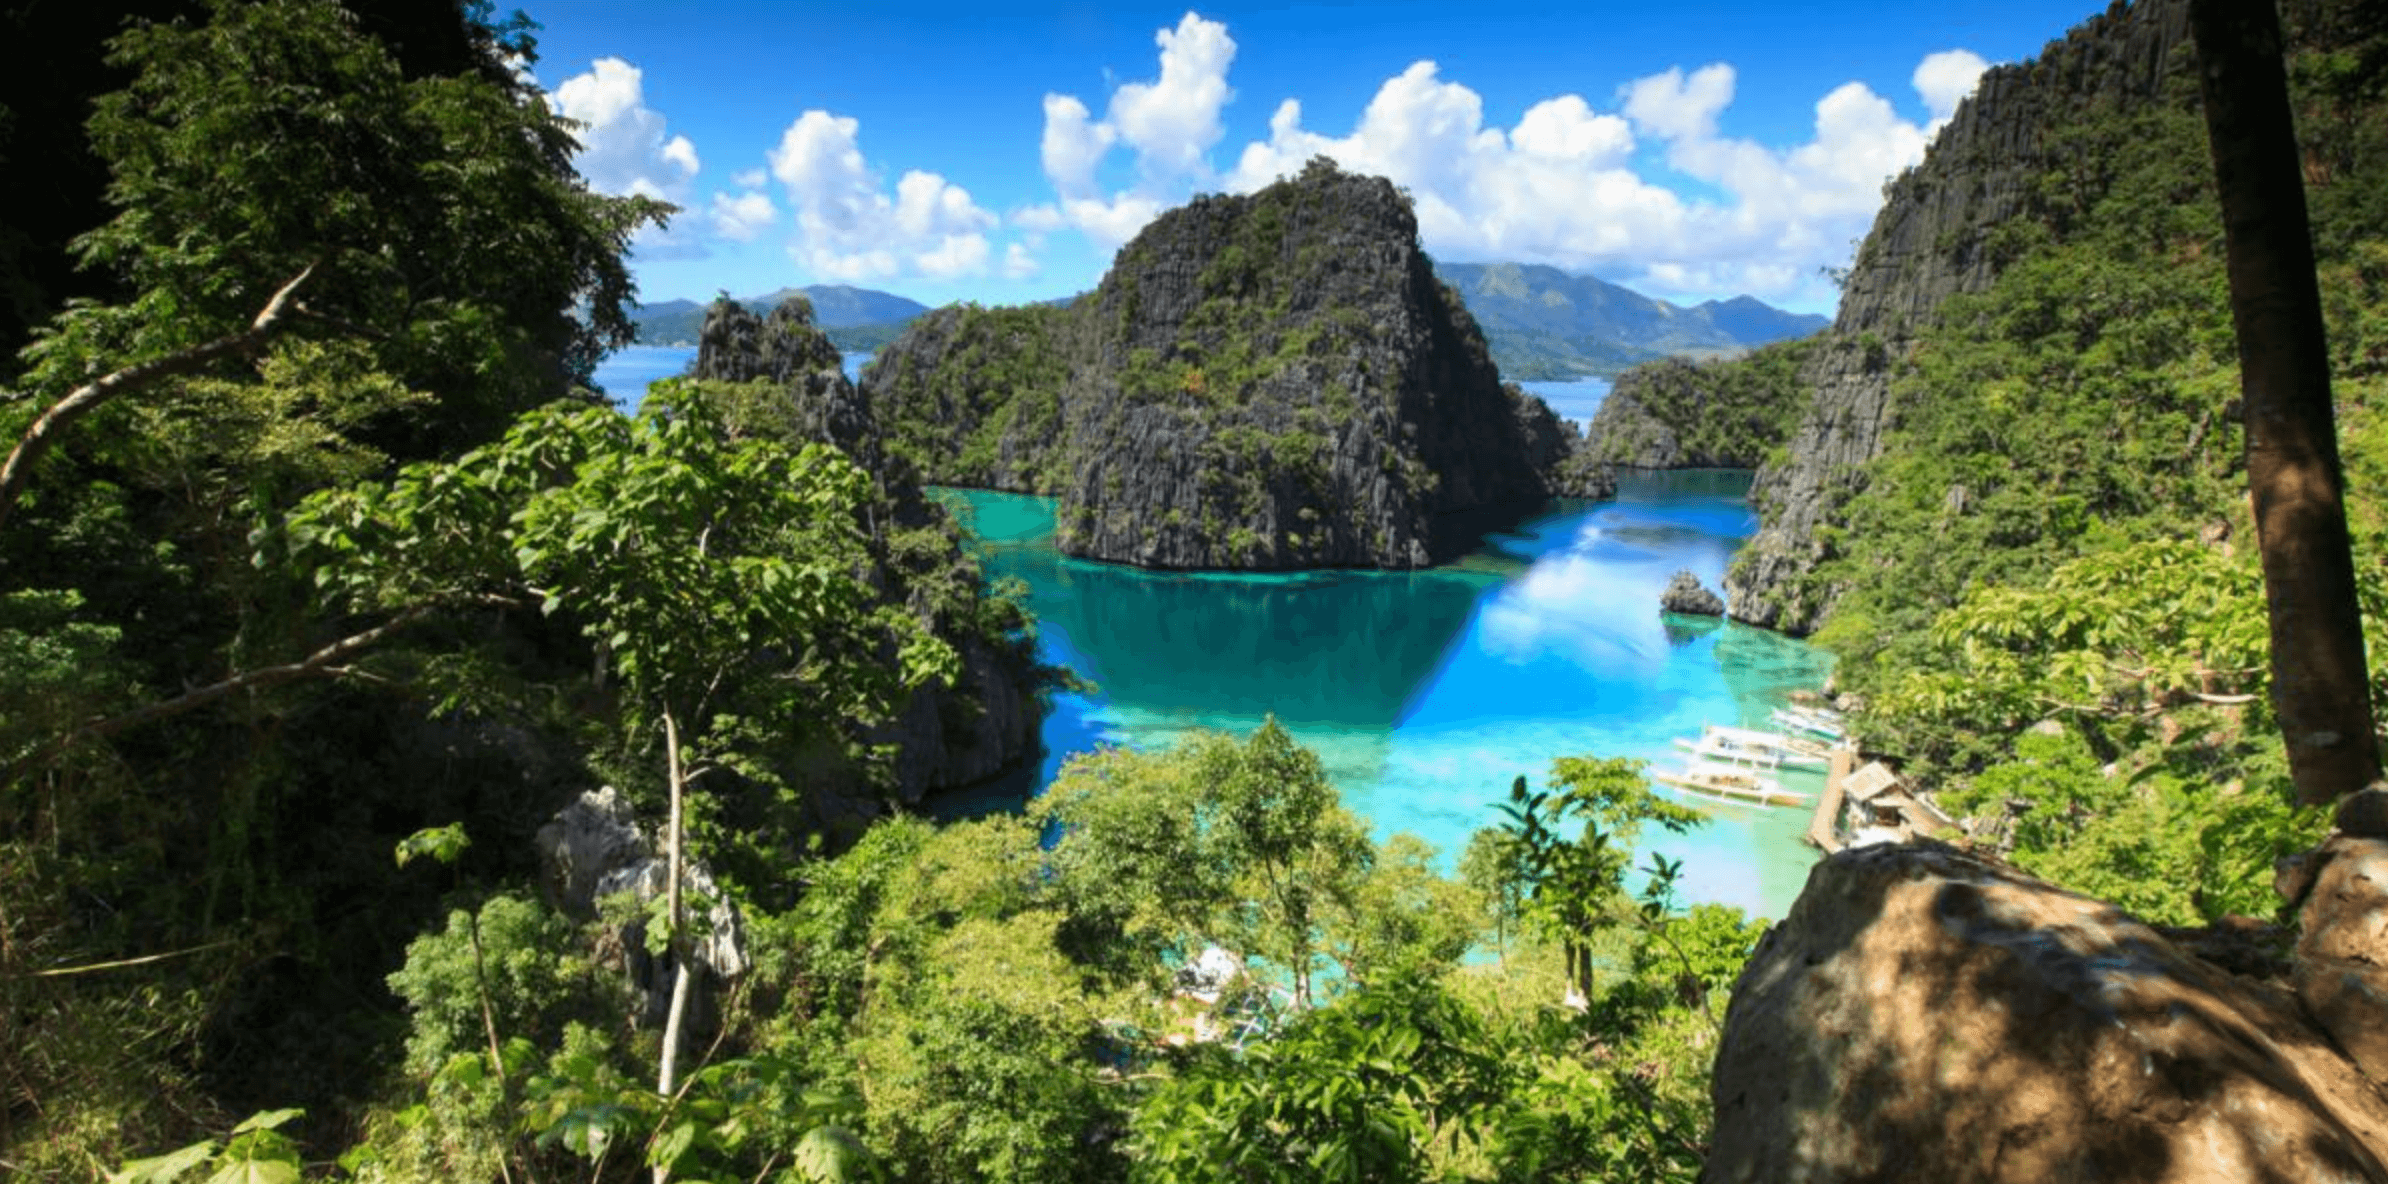 Coron Island. Where we will start and finish the expedition.